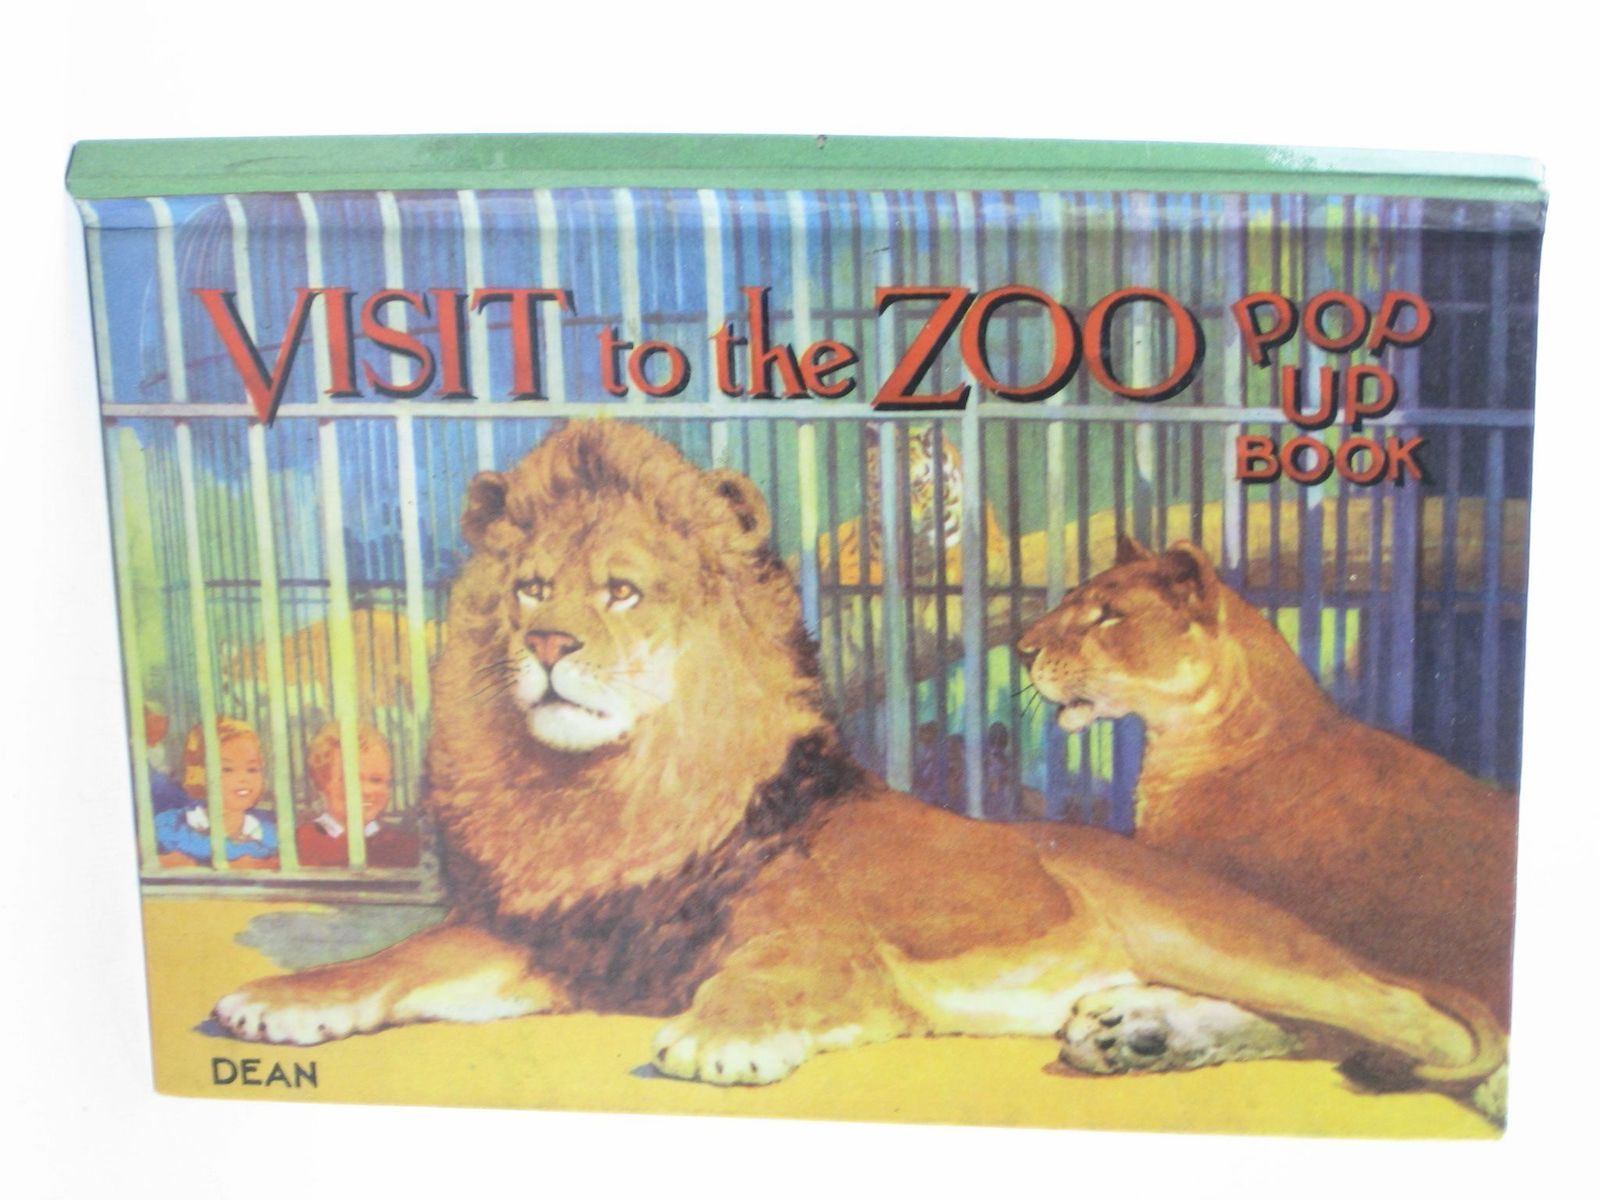 Photo of VISIT TO THE ZOO POP-UP BOOK published by Dean & Son Ltd. (STOCK CODE: 1311589)  for sale by Stella & Rose's Books